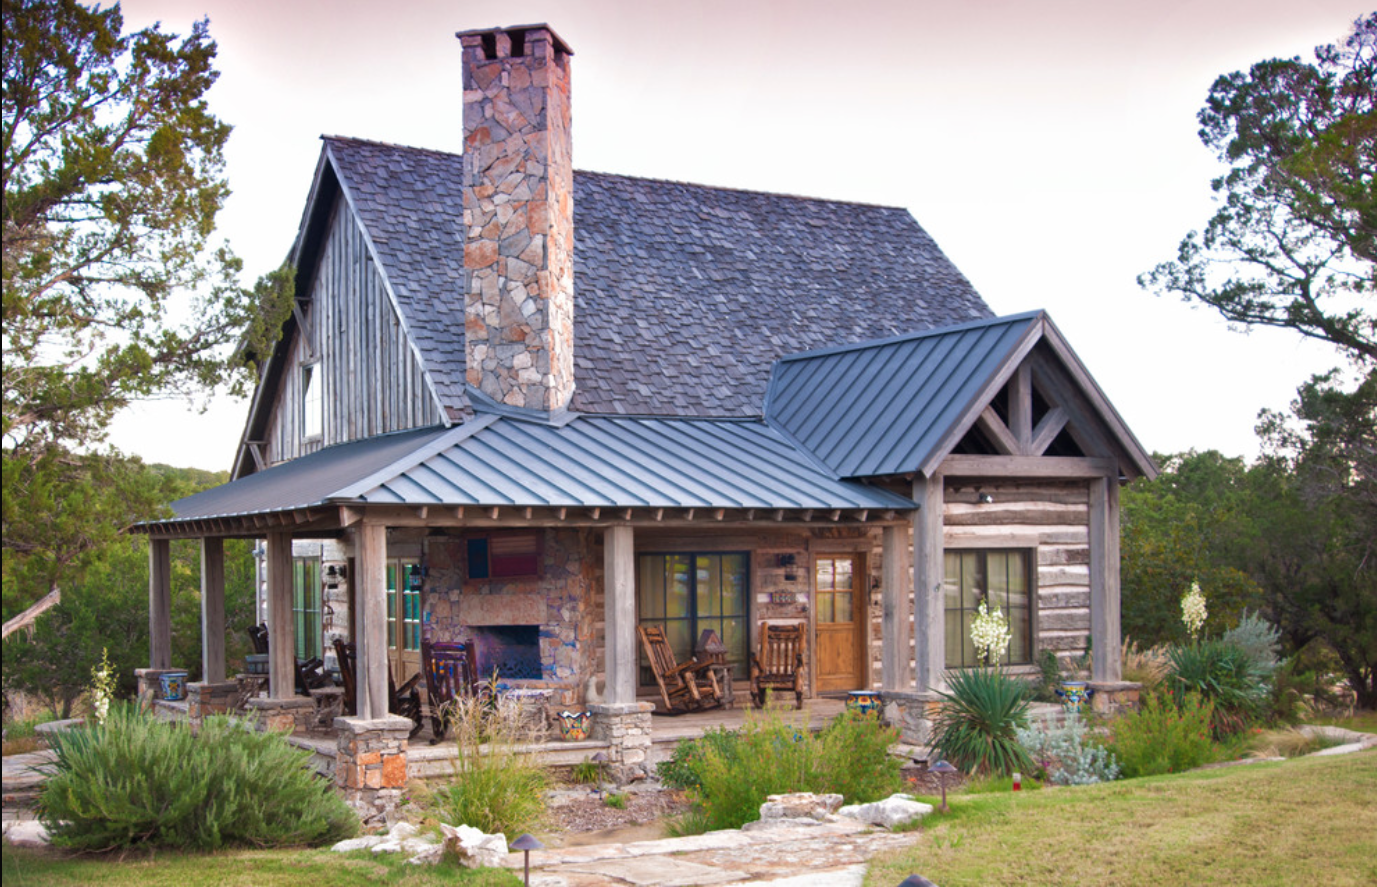 Pin By Christina Nolan On Beautiful Houses Cabin Design Rustic